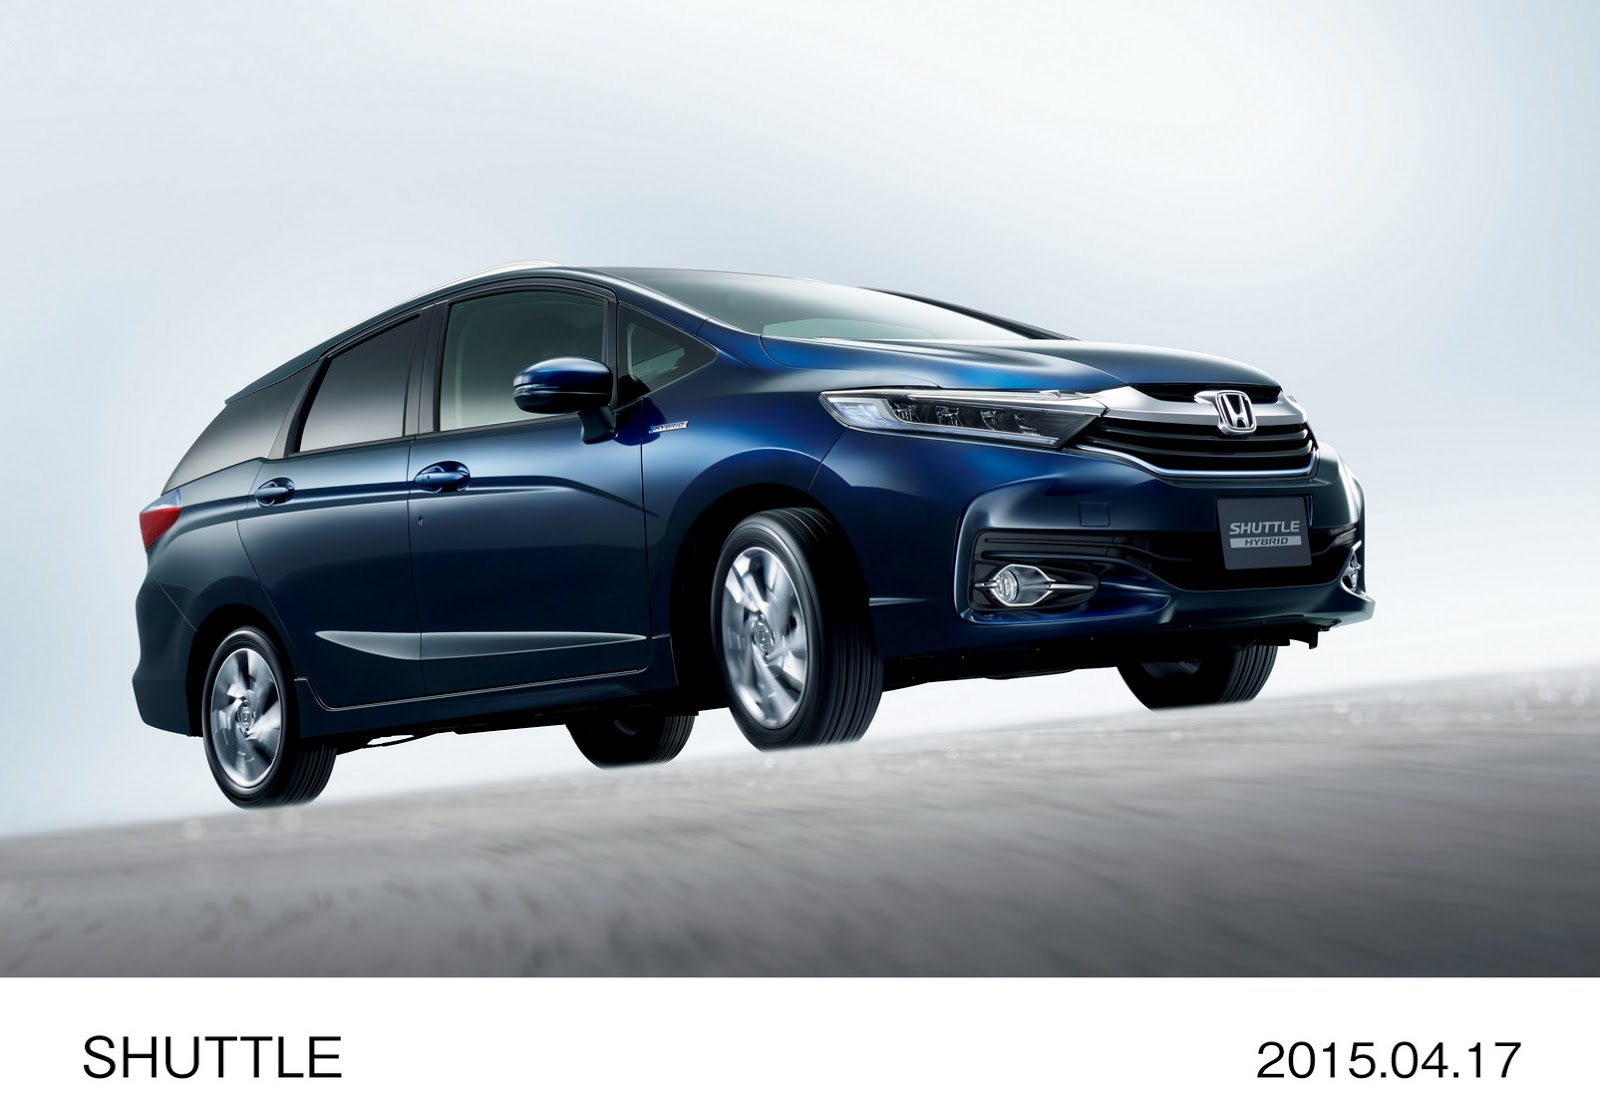 Honda Shuttle Revealed In Japan The Fit S Wagon Brother Photo Gallery on 2008 Honda Cr V